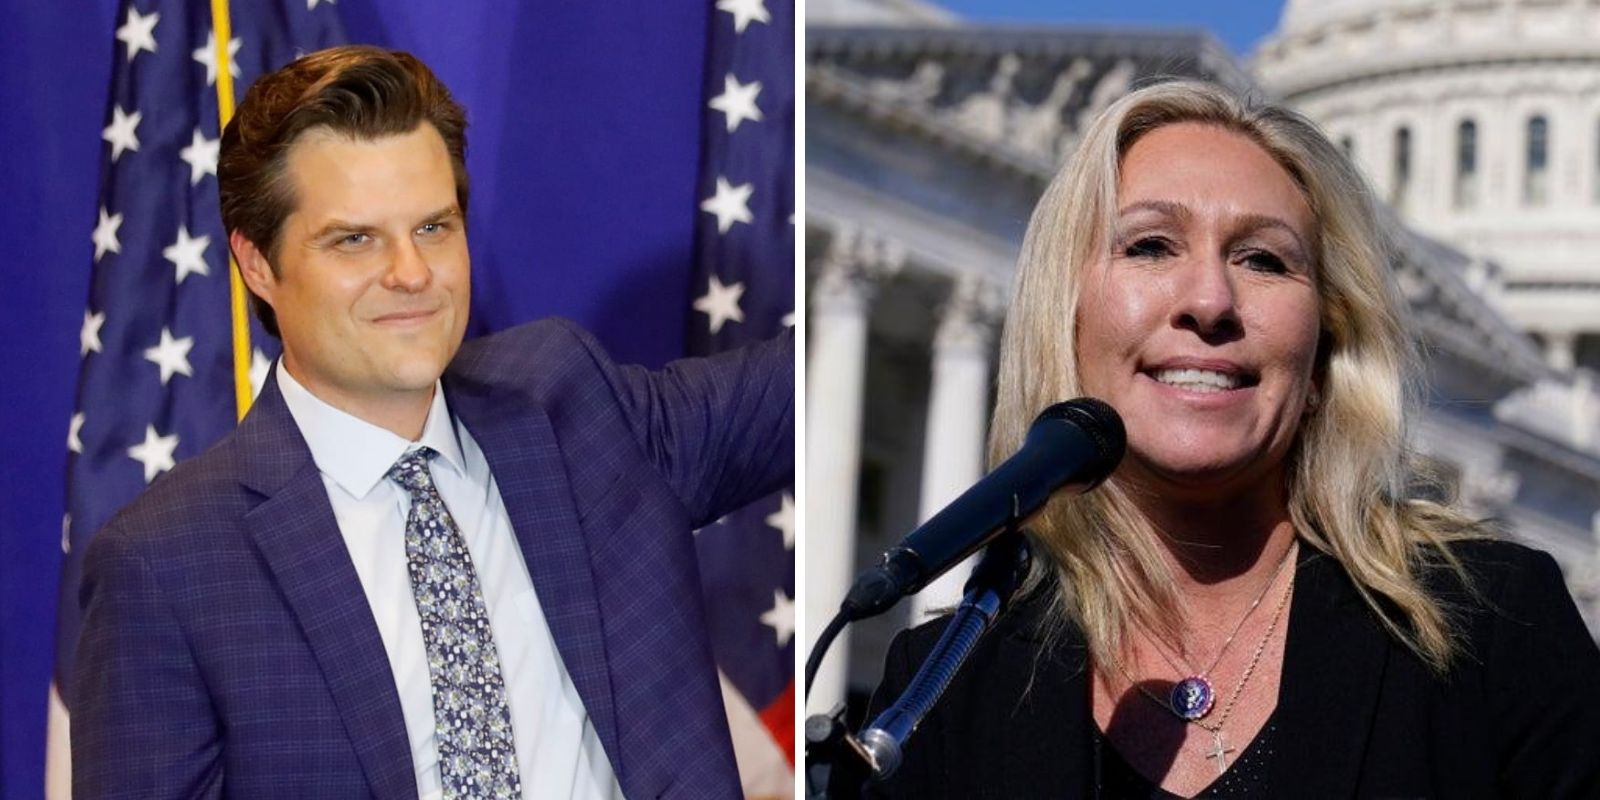 Gaetz, Greene call on FBI to release 14,000 hours of footage from Jan 6